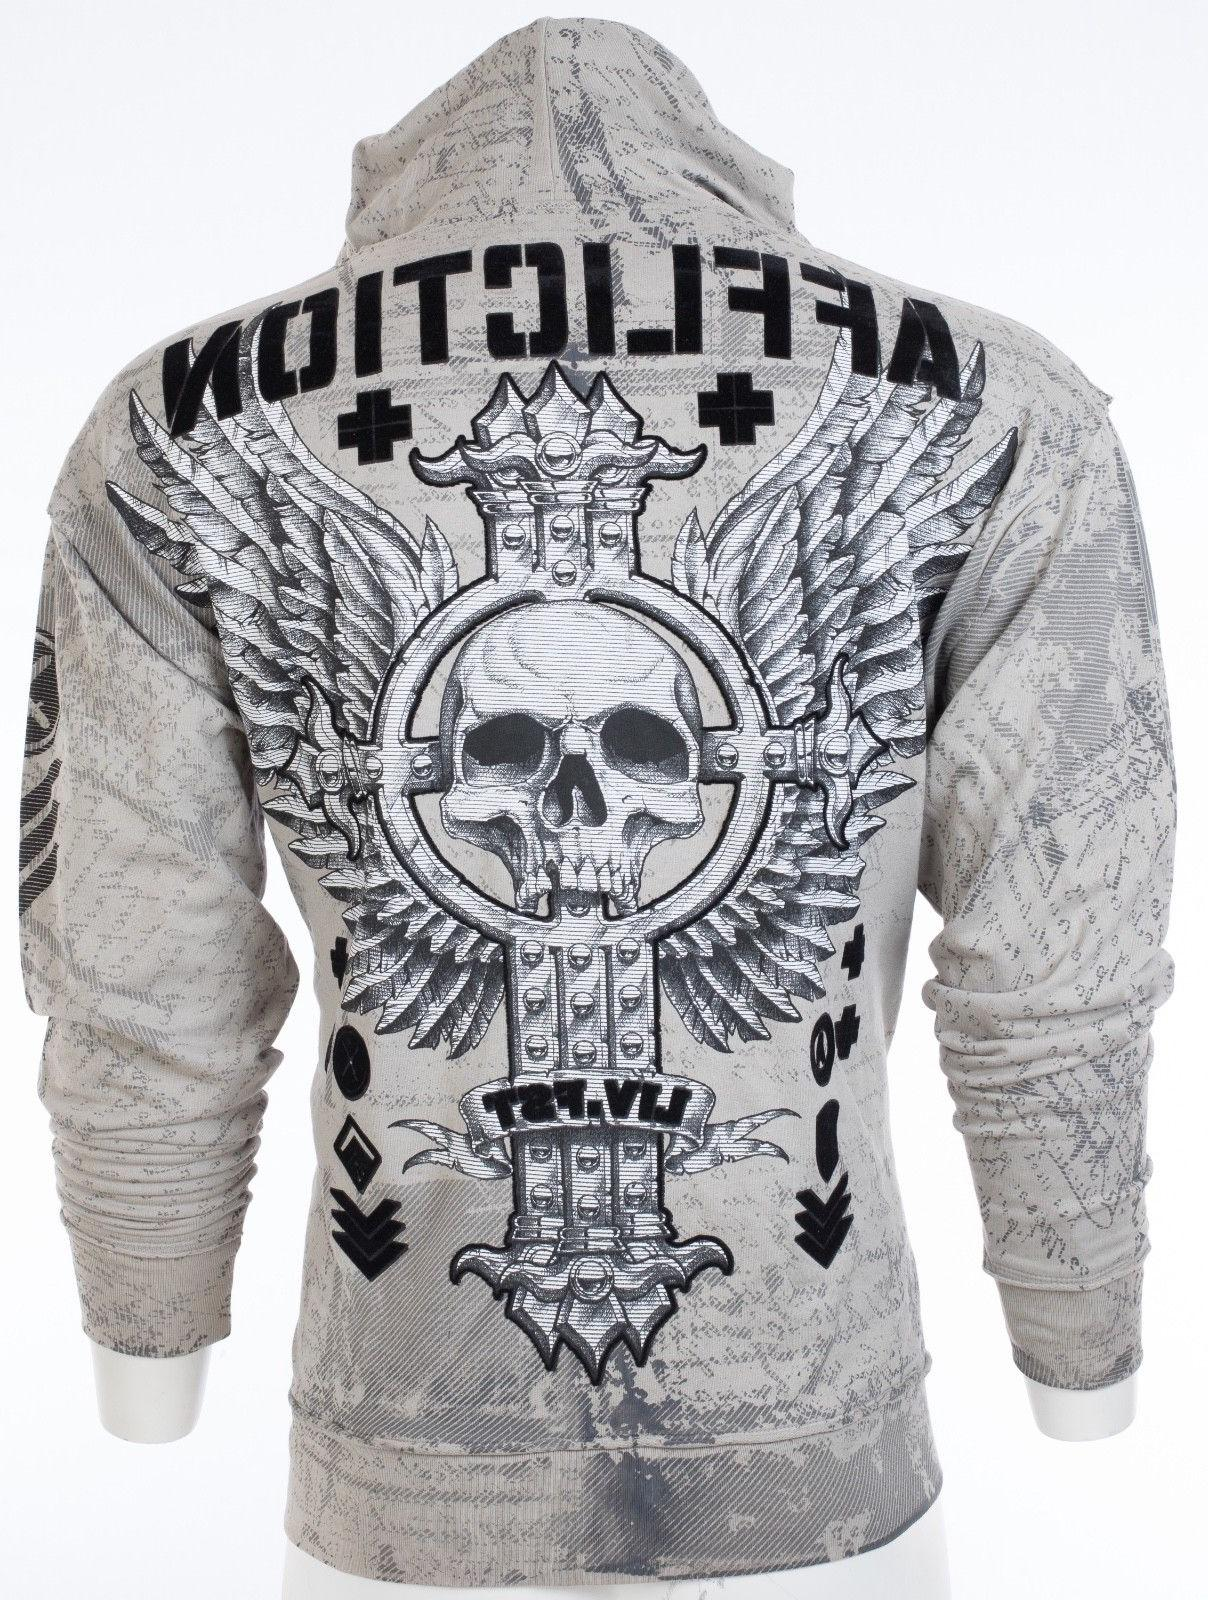 AFFLICTION HOODIE Sweat Shirt VIVE UFC $78